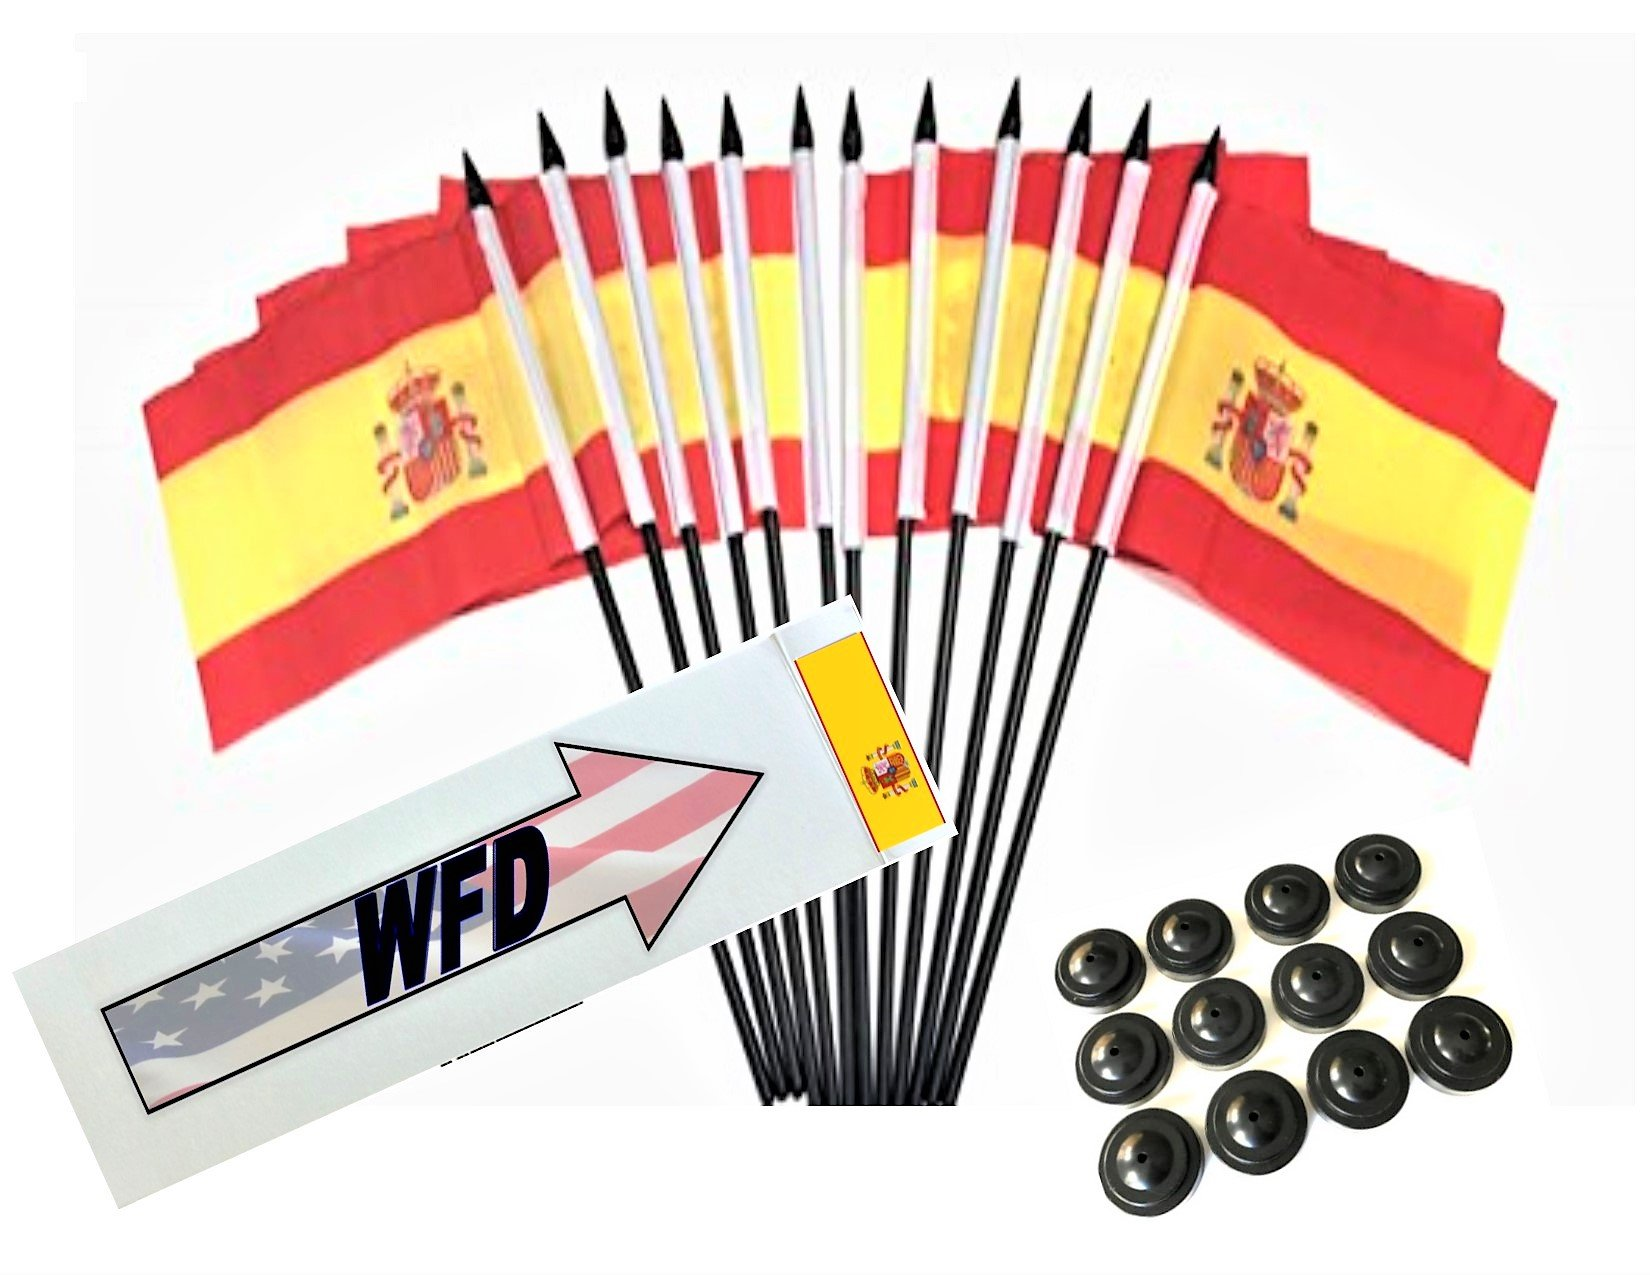 Box of 12 Spain 4''x6'' Polyester Miniature Office Desk & Little Table Flags, 4x6 Spanish Small Mini Hand Waving Stick Flags with 12 Flag Bases (Stands)